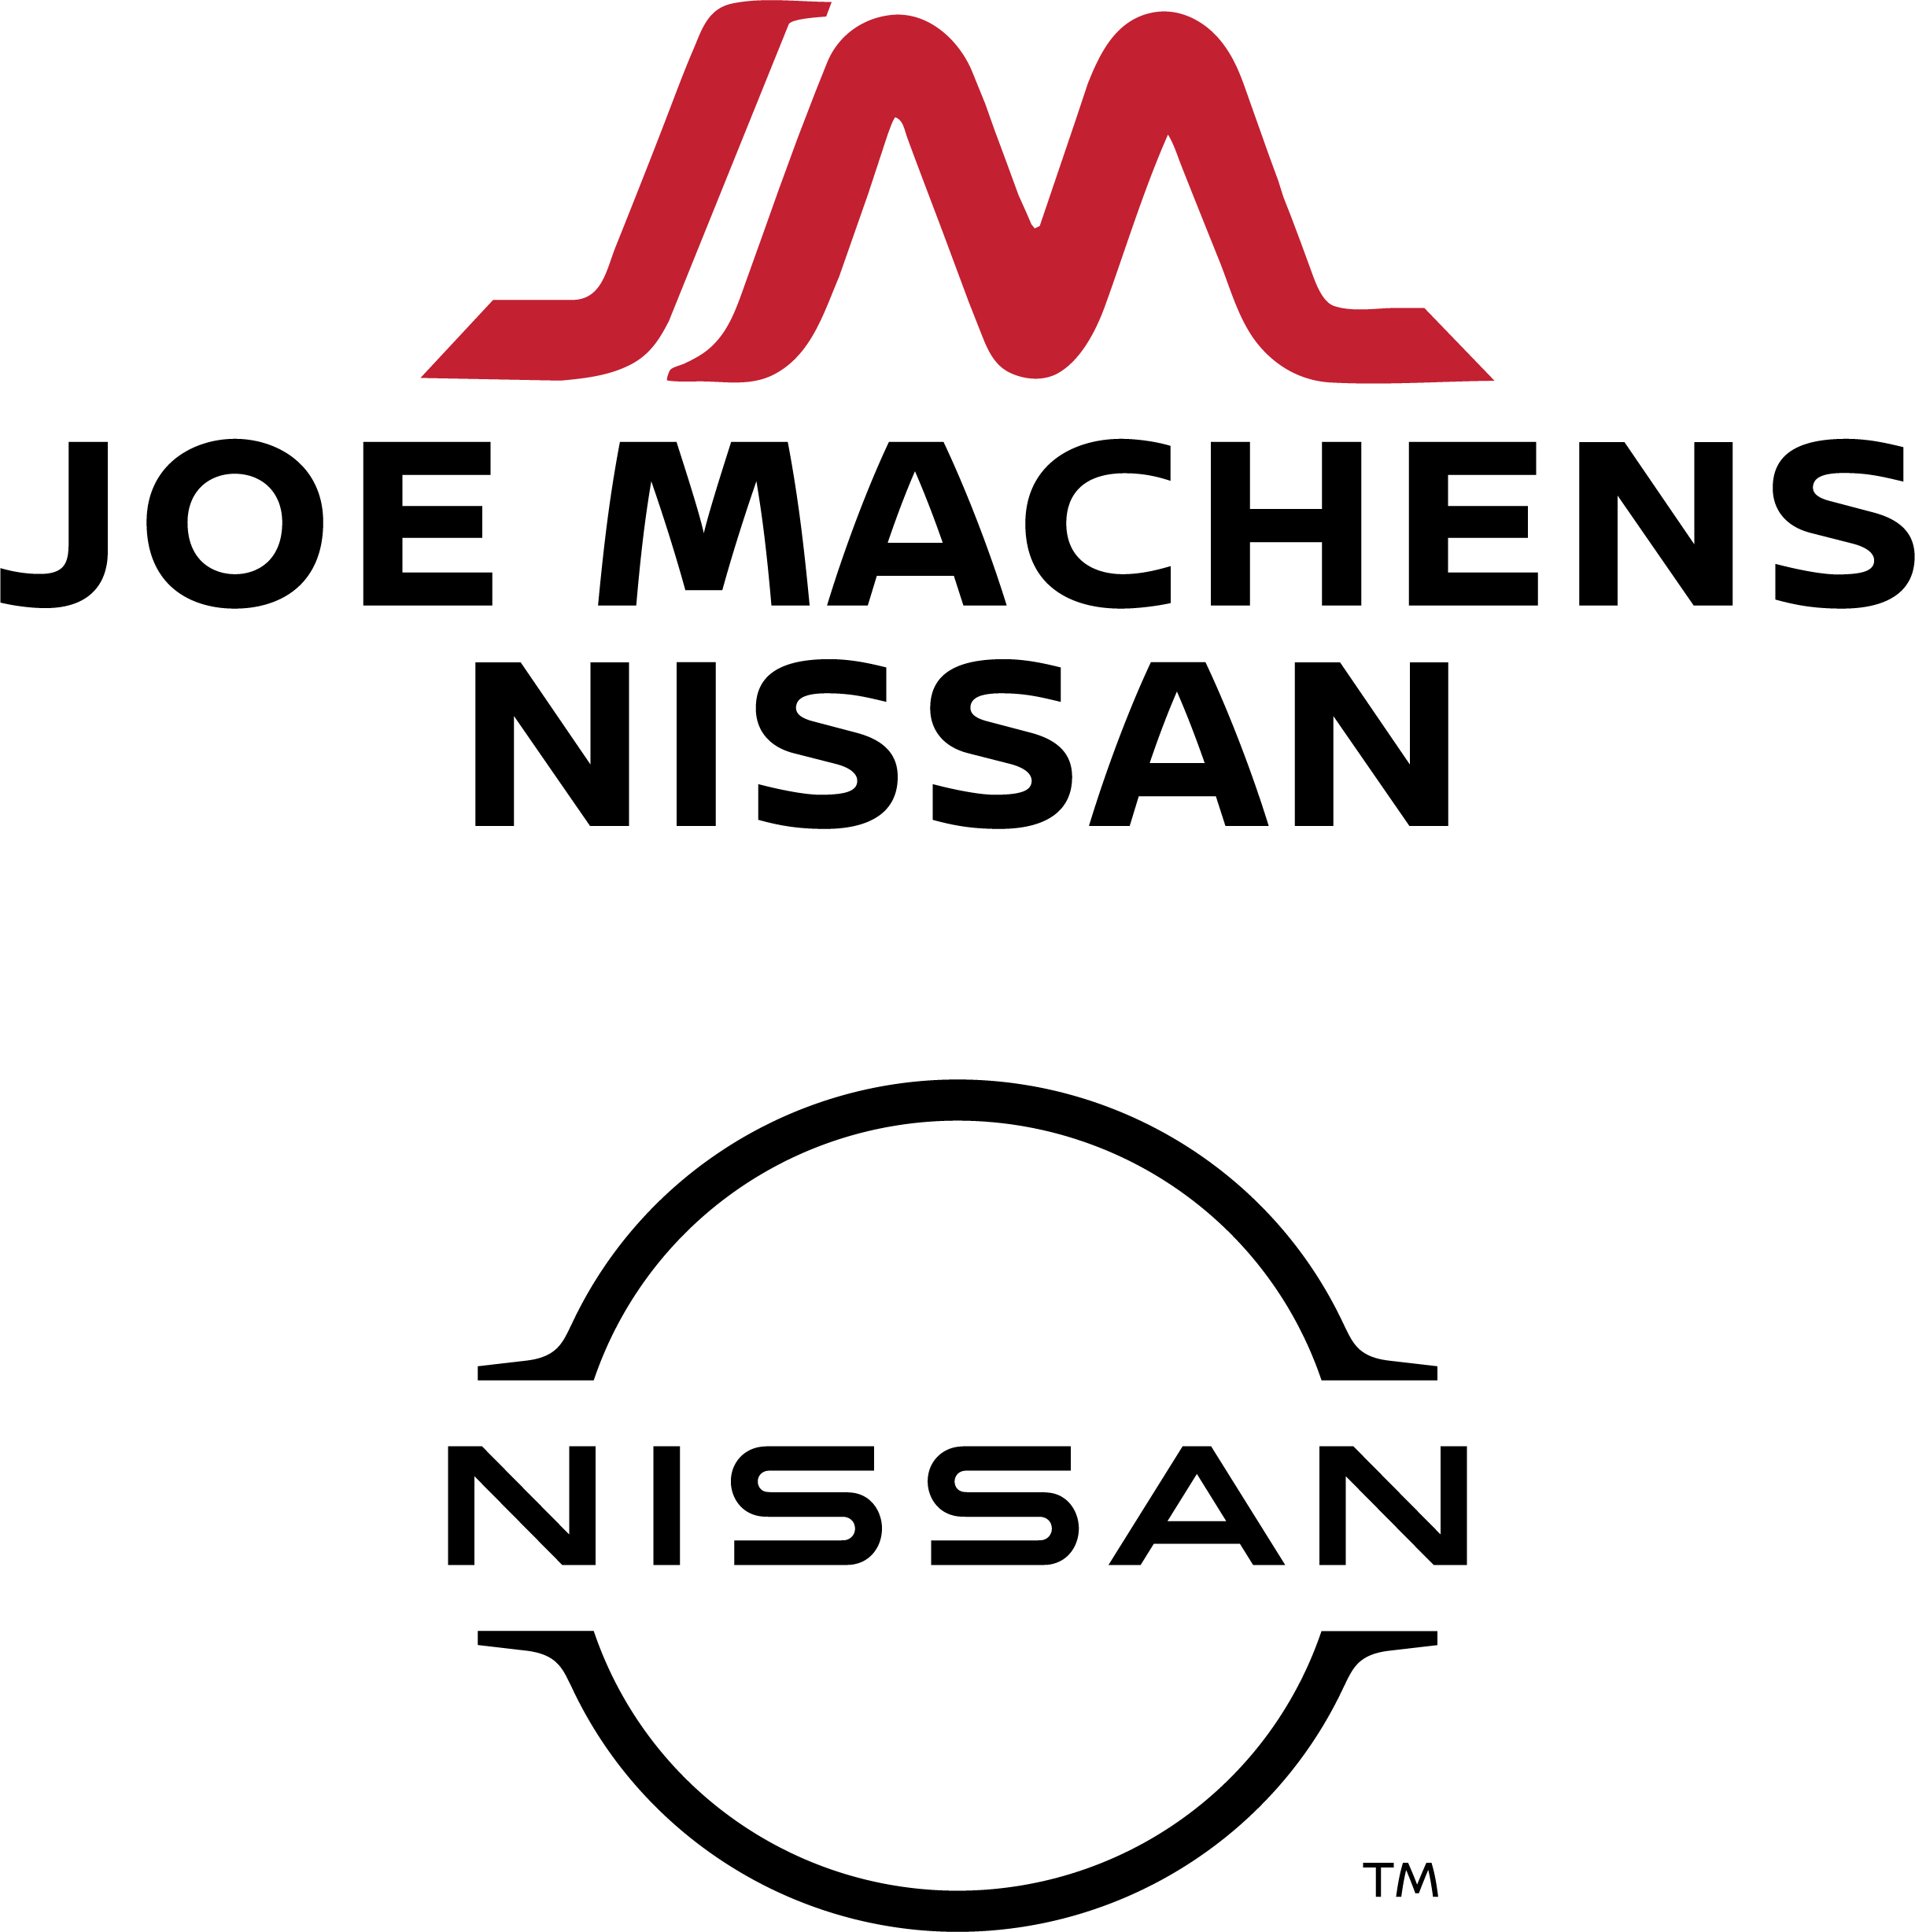 Joe Machens  Nissan